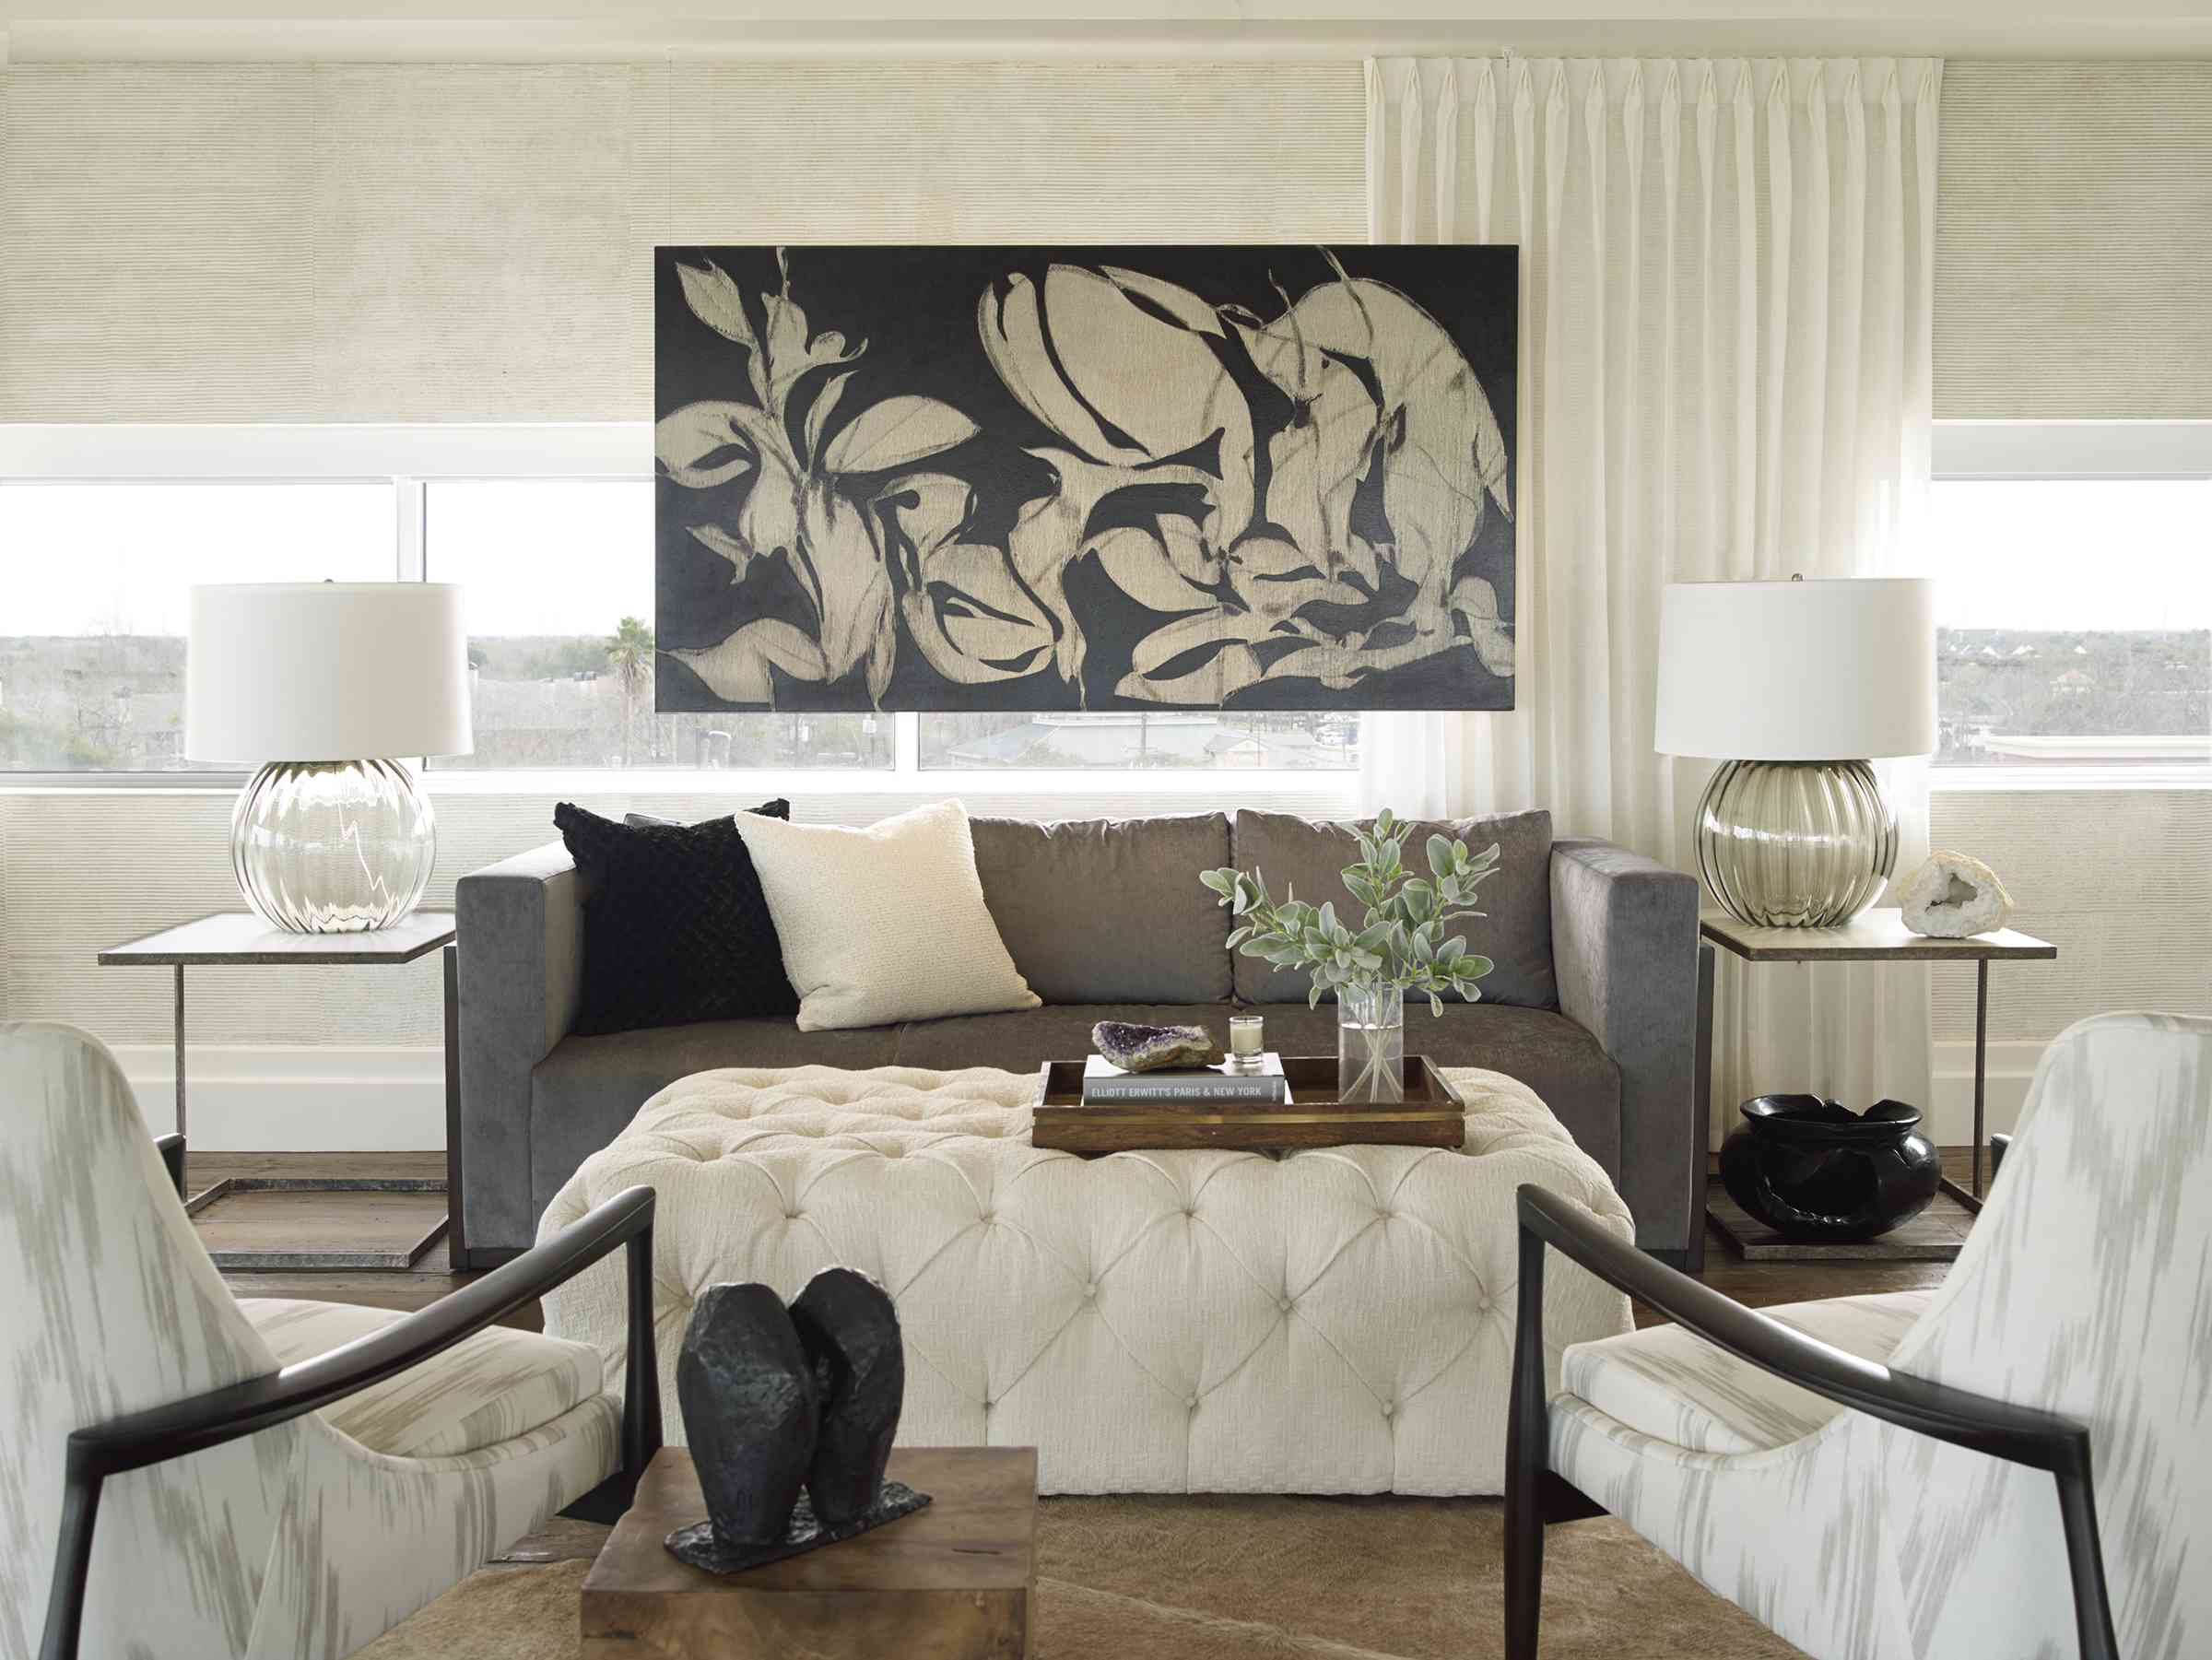 Chic living room filled with art and décor.